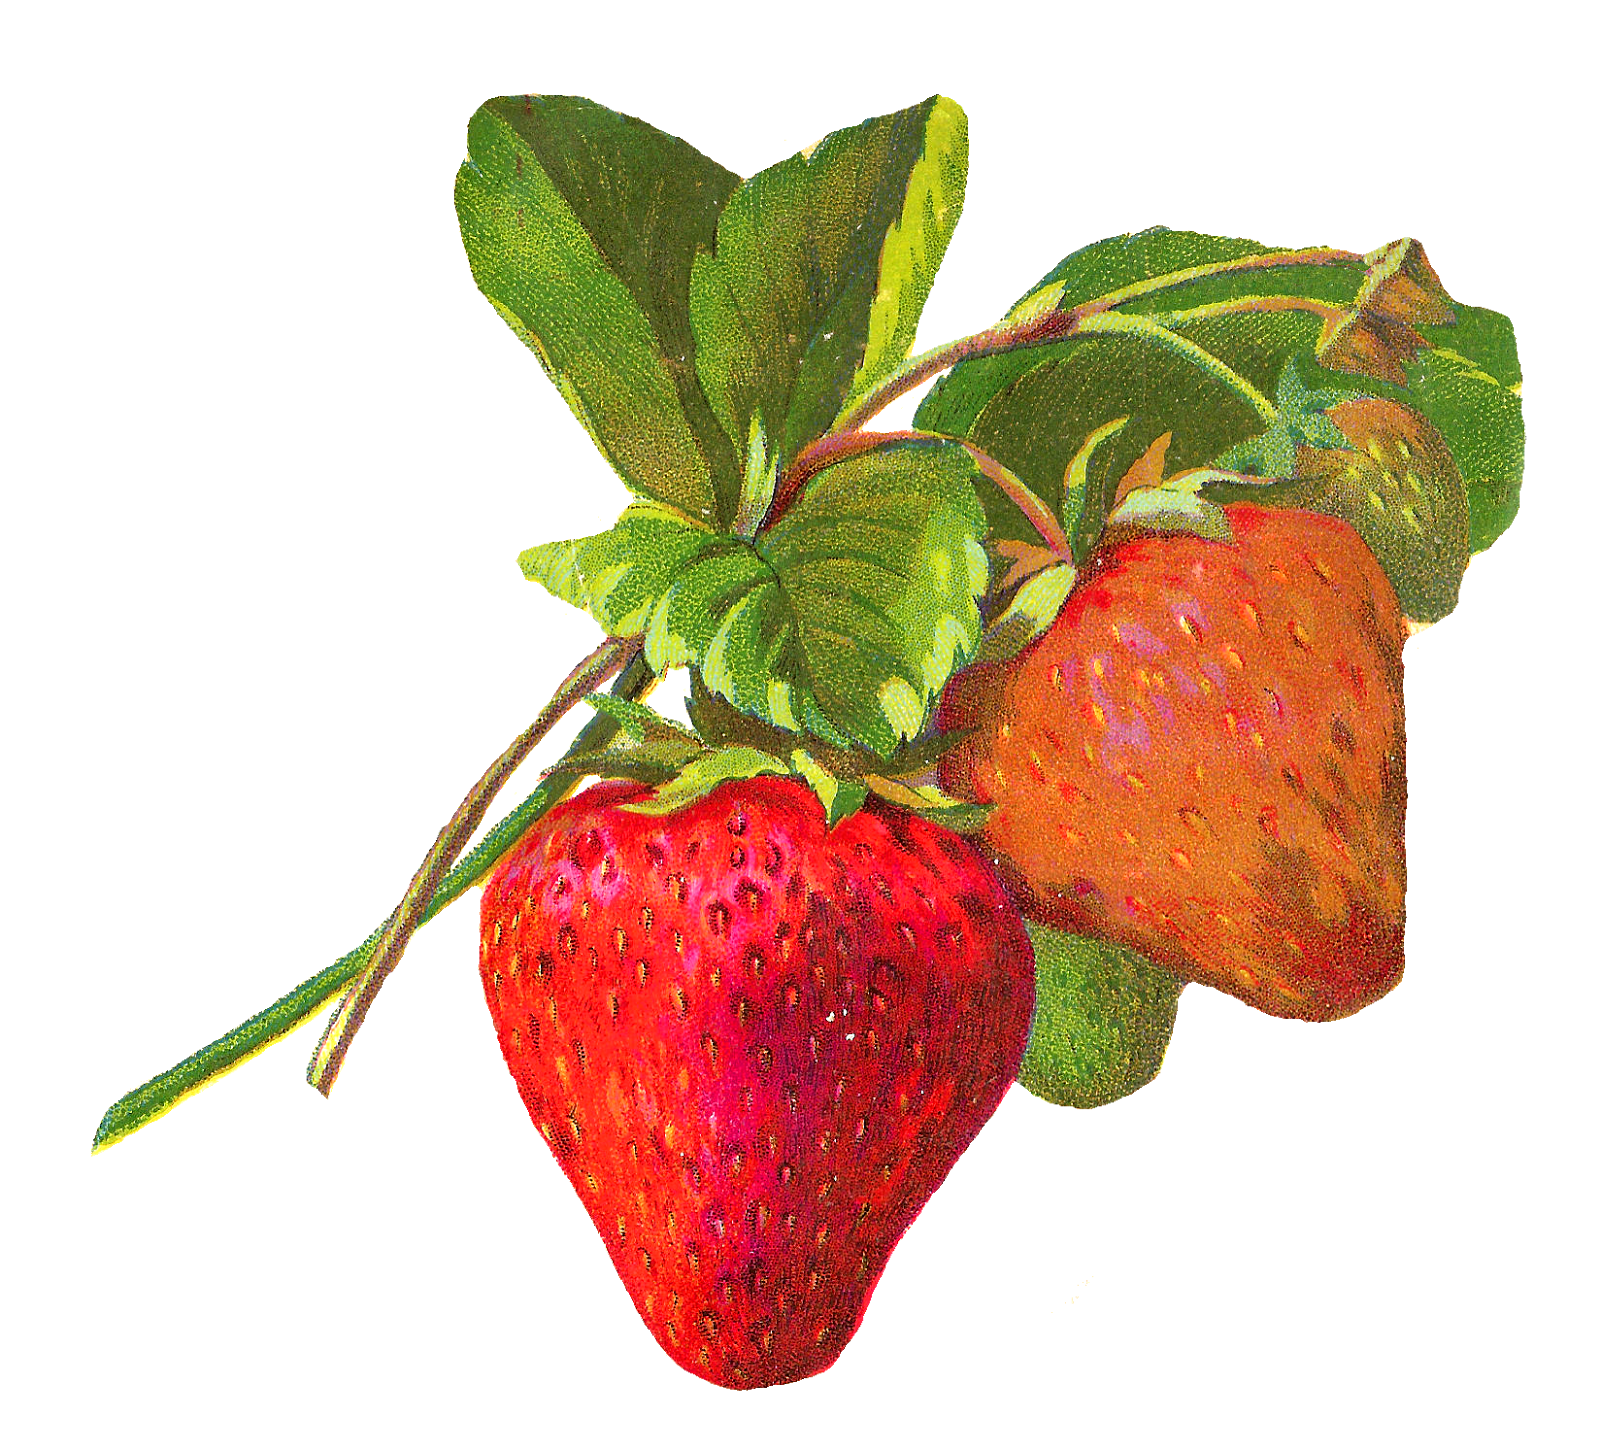 Strawberries clipart fun fruit. Antique images illustrations strawberry